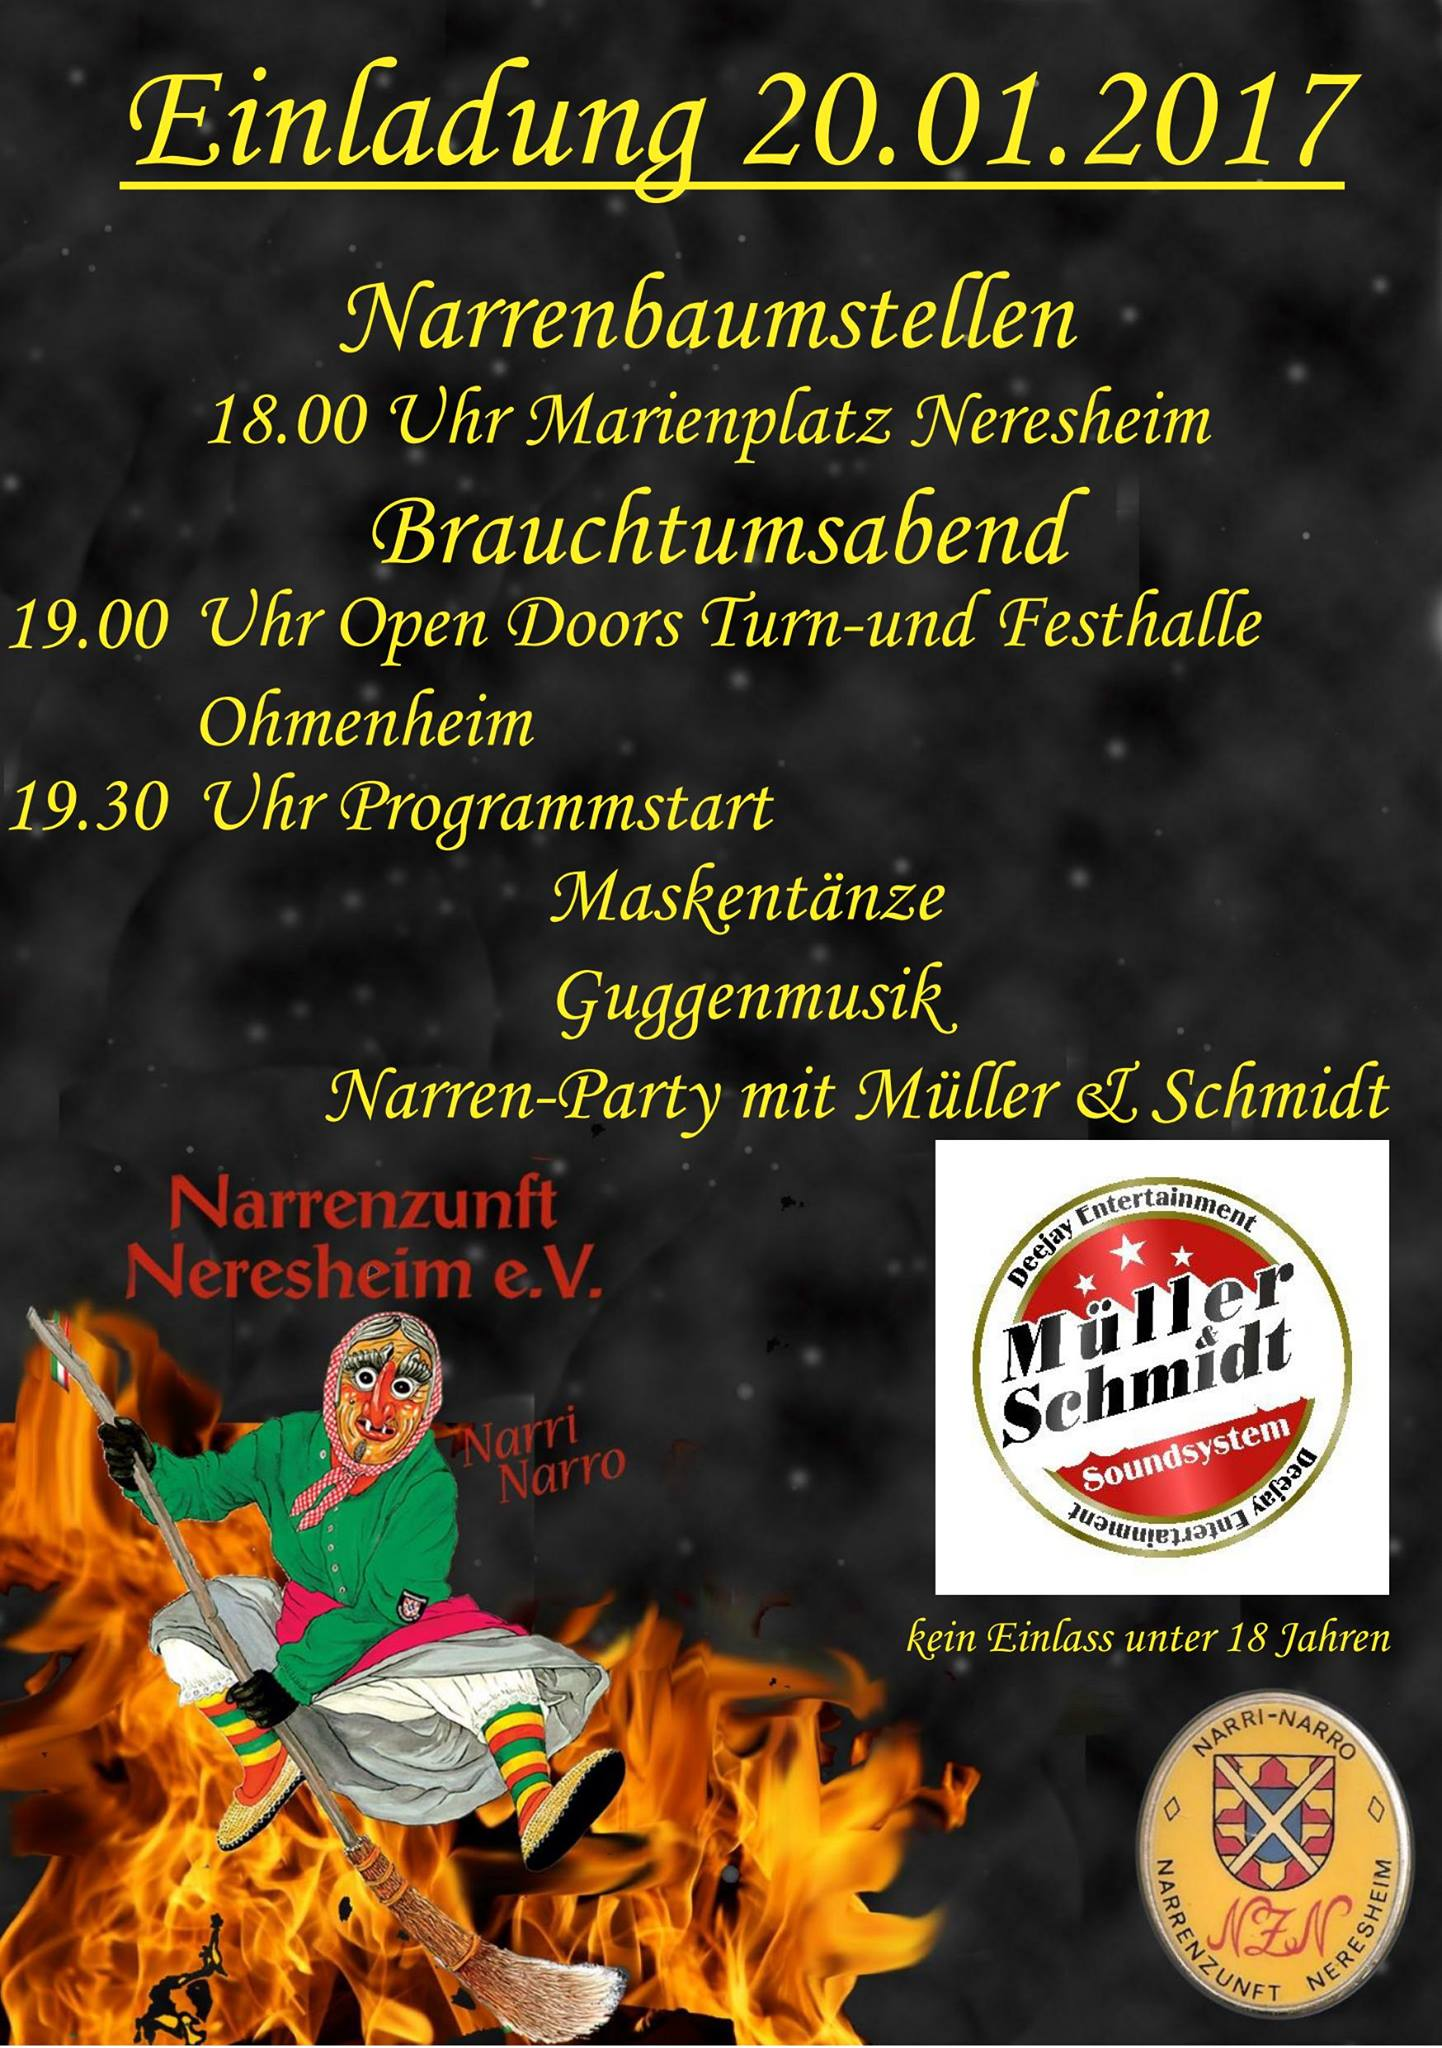 Narrenbaumstellen 2017 NZN Neresheim